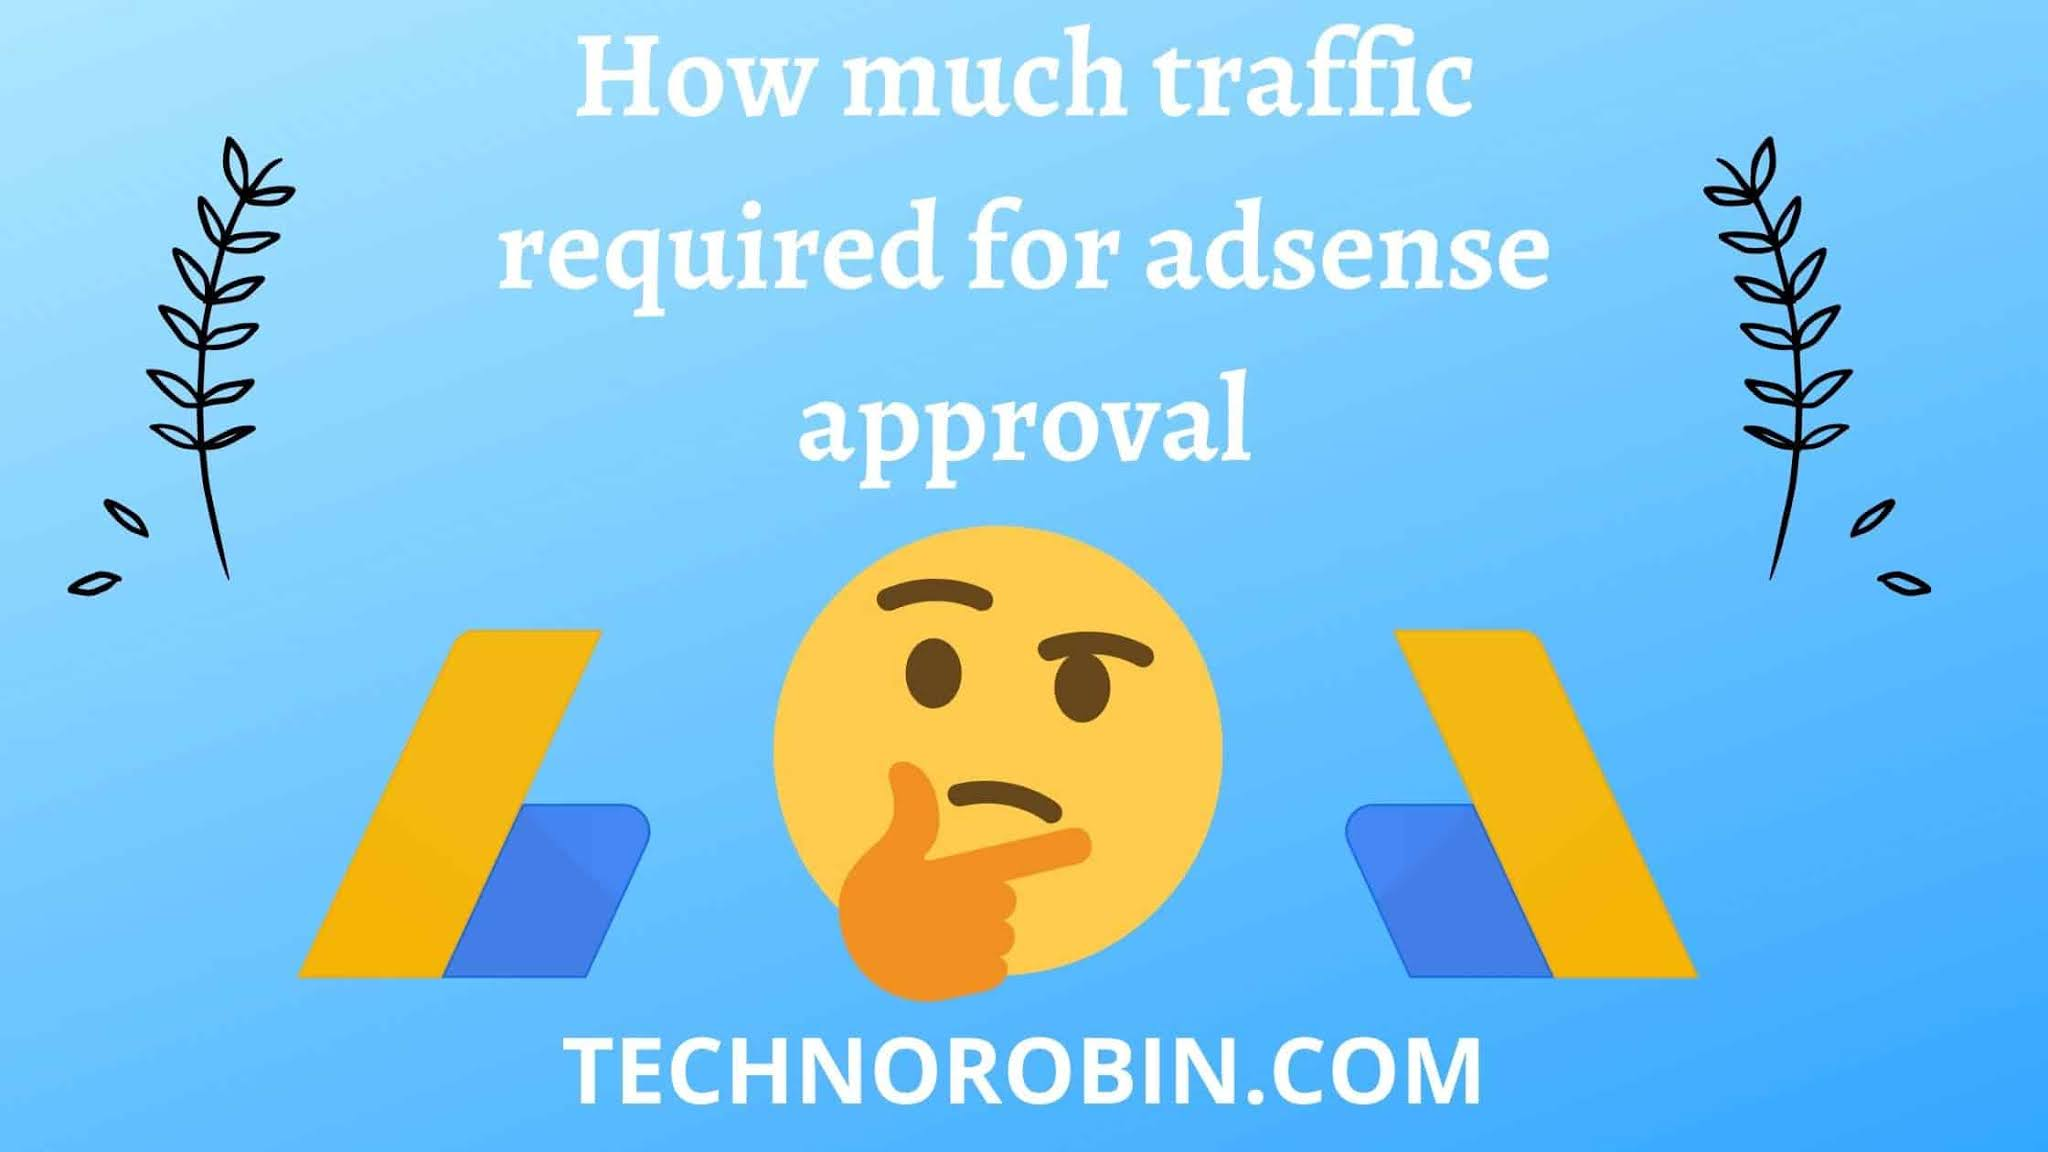 How much traffic required for adsense approval